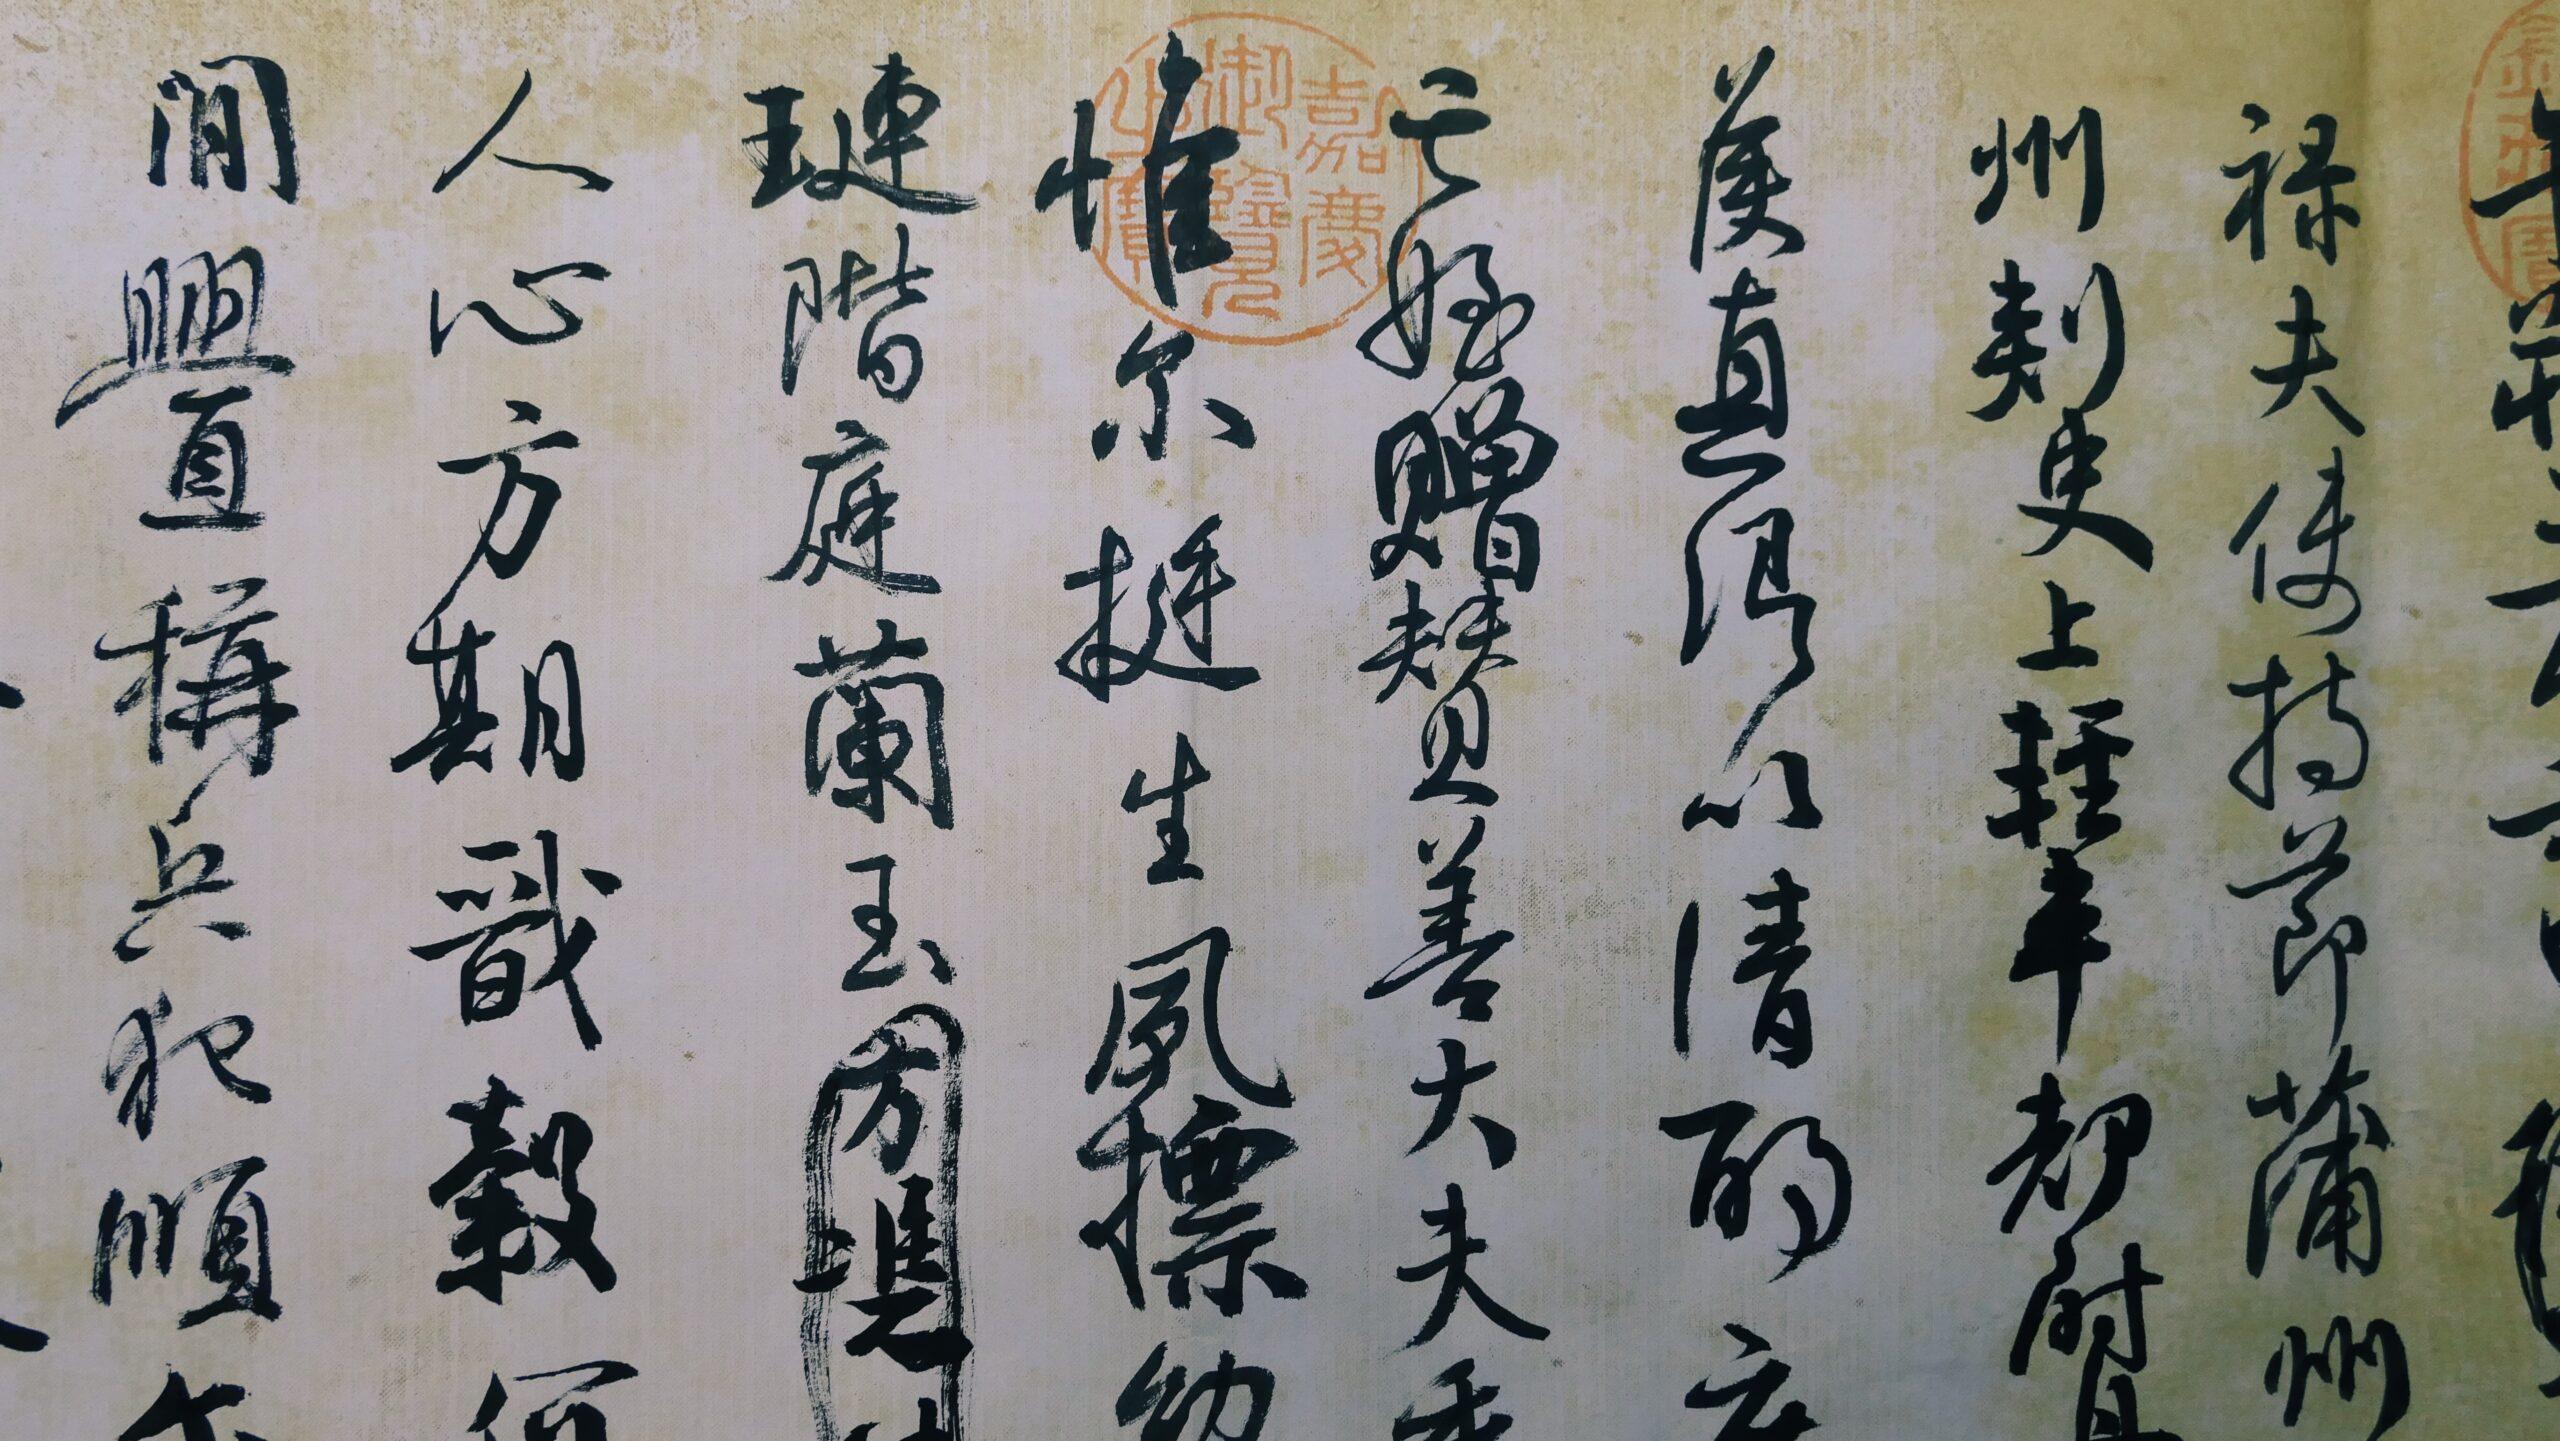 Japanese calligraphy on rice paper. Photo by Raychan on Unsplash